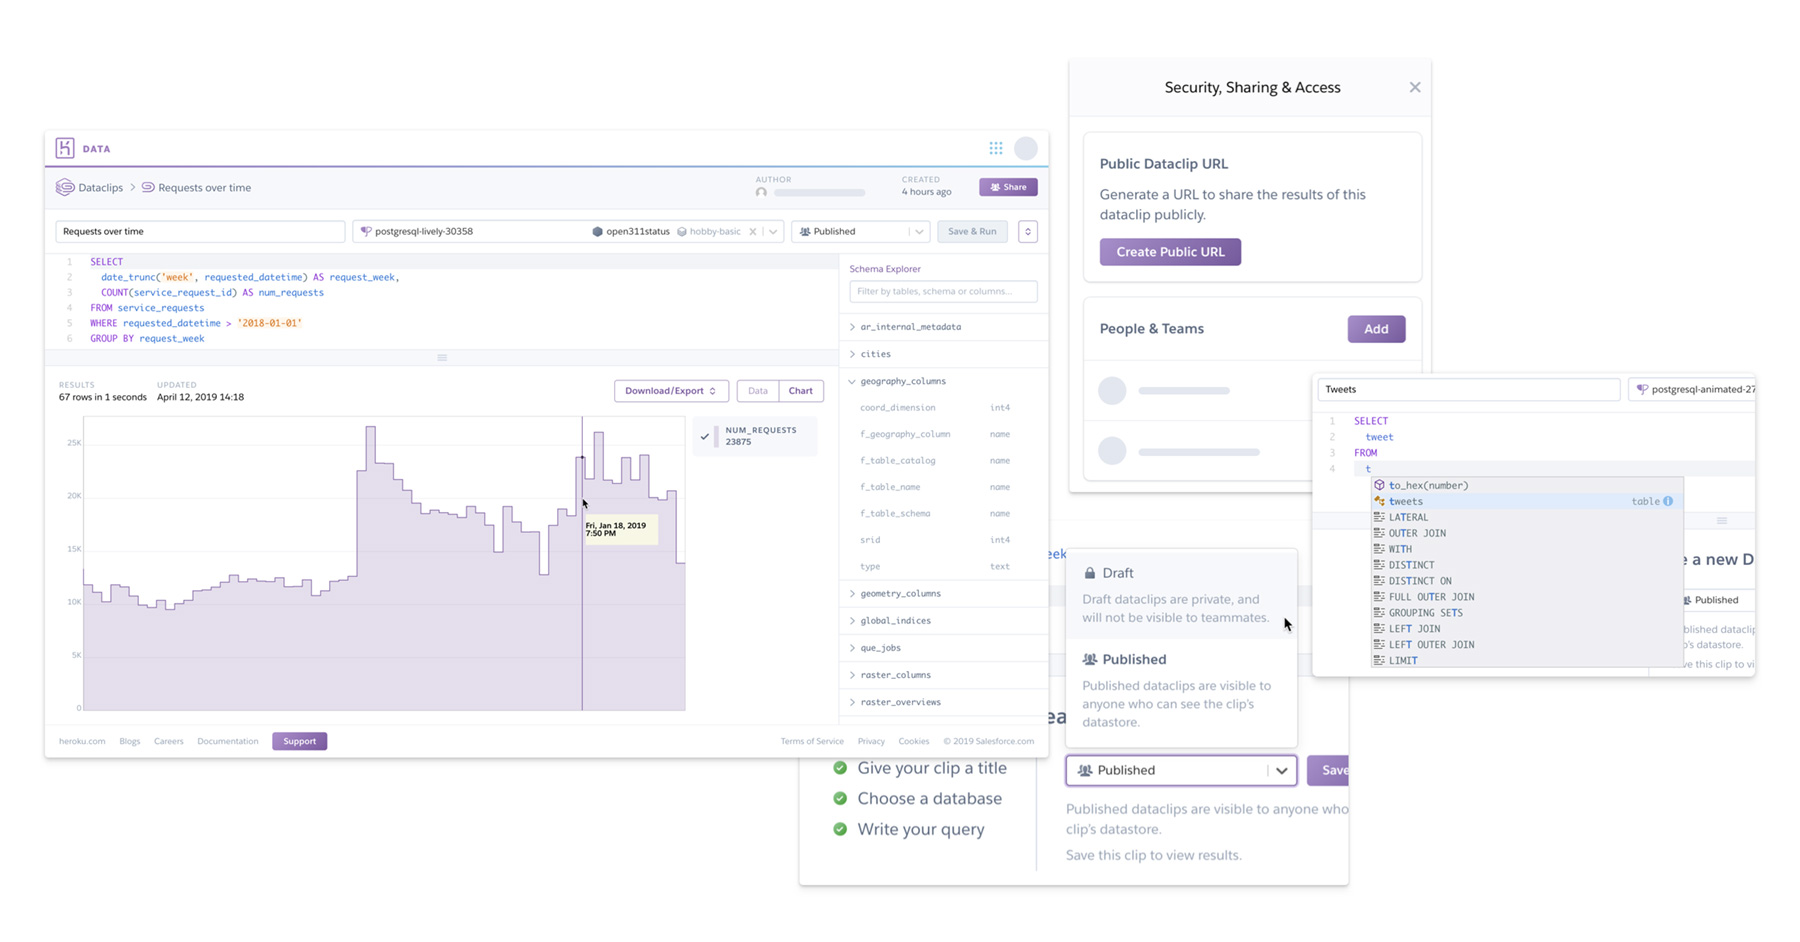 An image showing different views of the Heroku Dataclips GUI